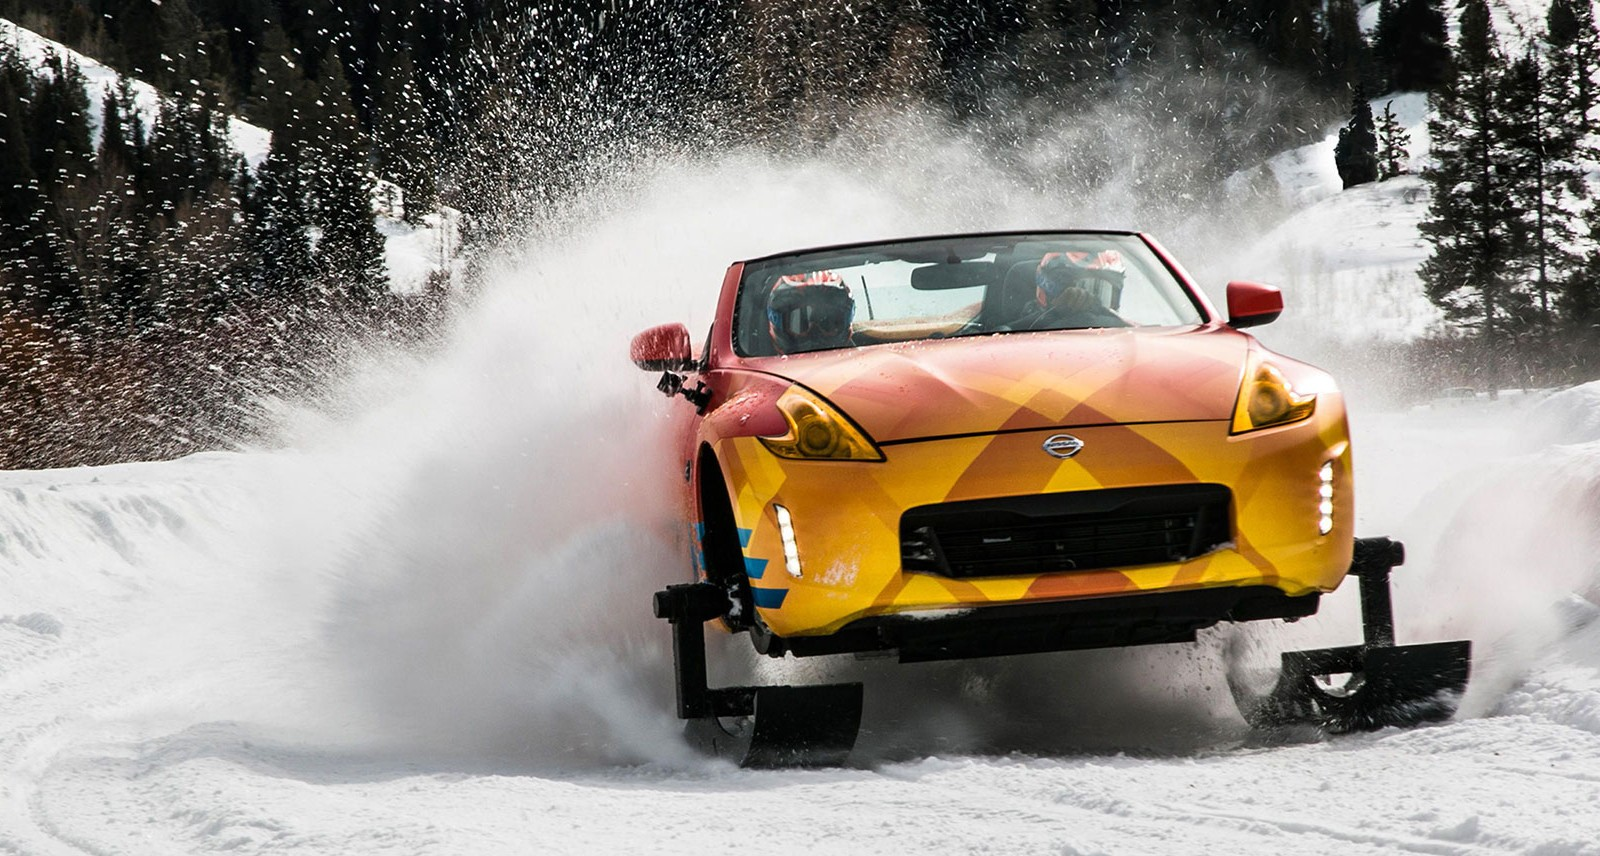 This Nissan 370Zki Snowmobile-Car Is the Ultimate Winter Beater